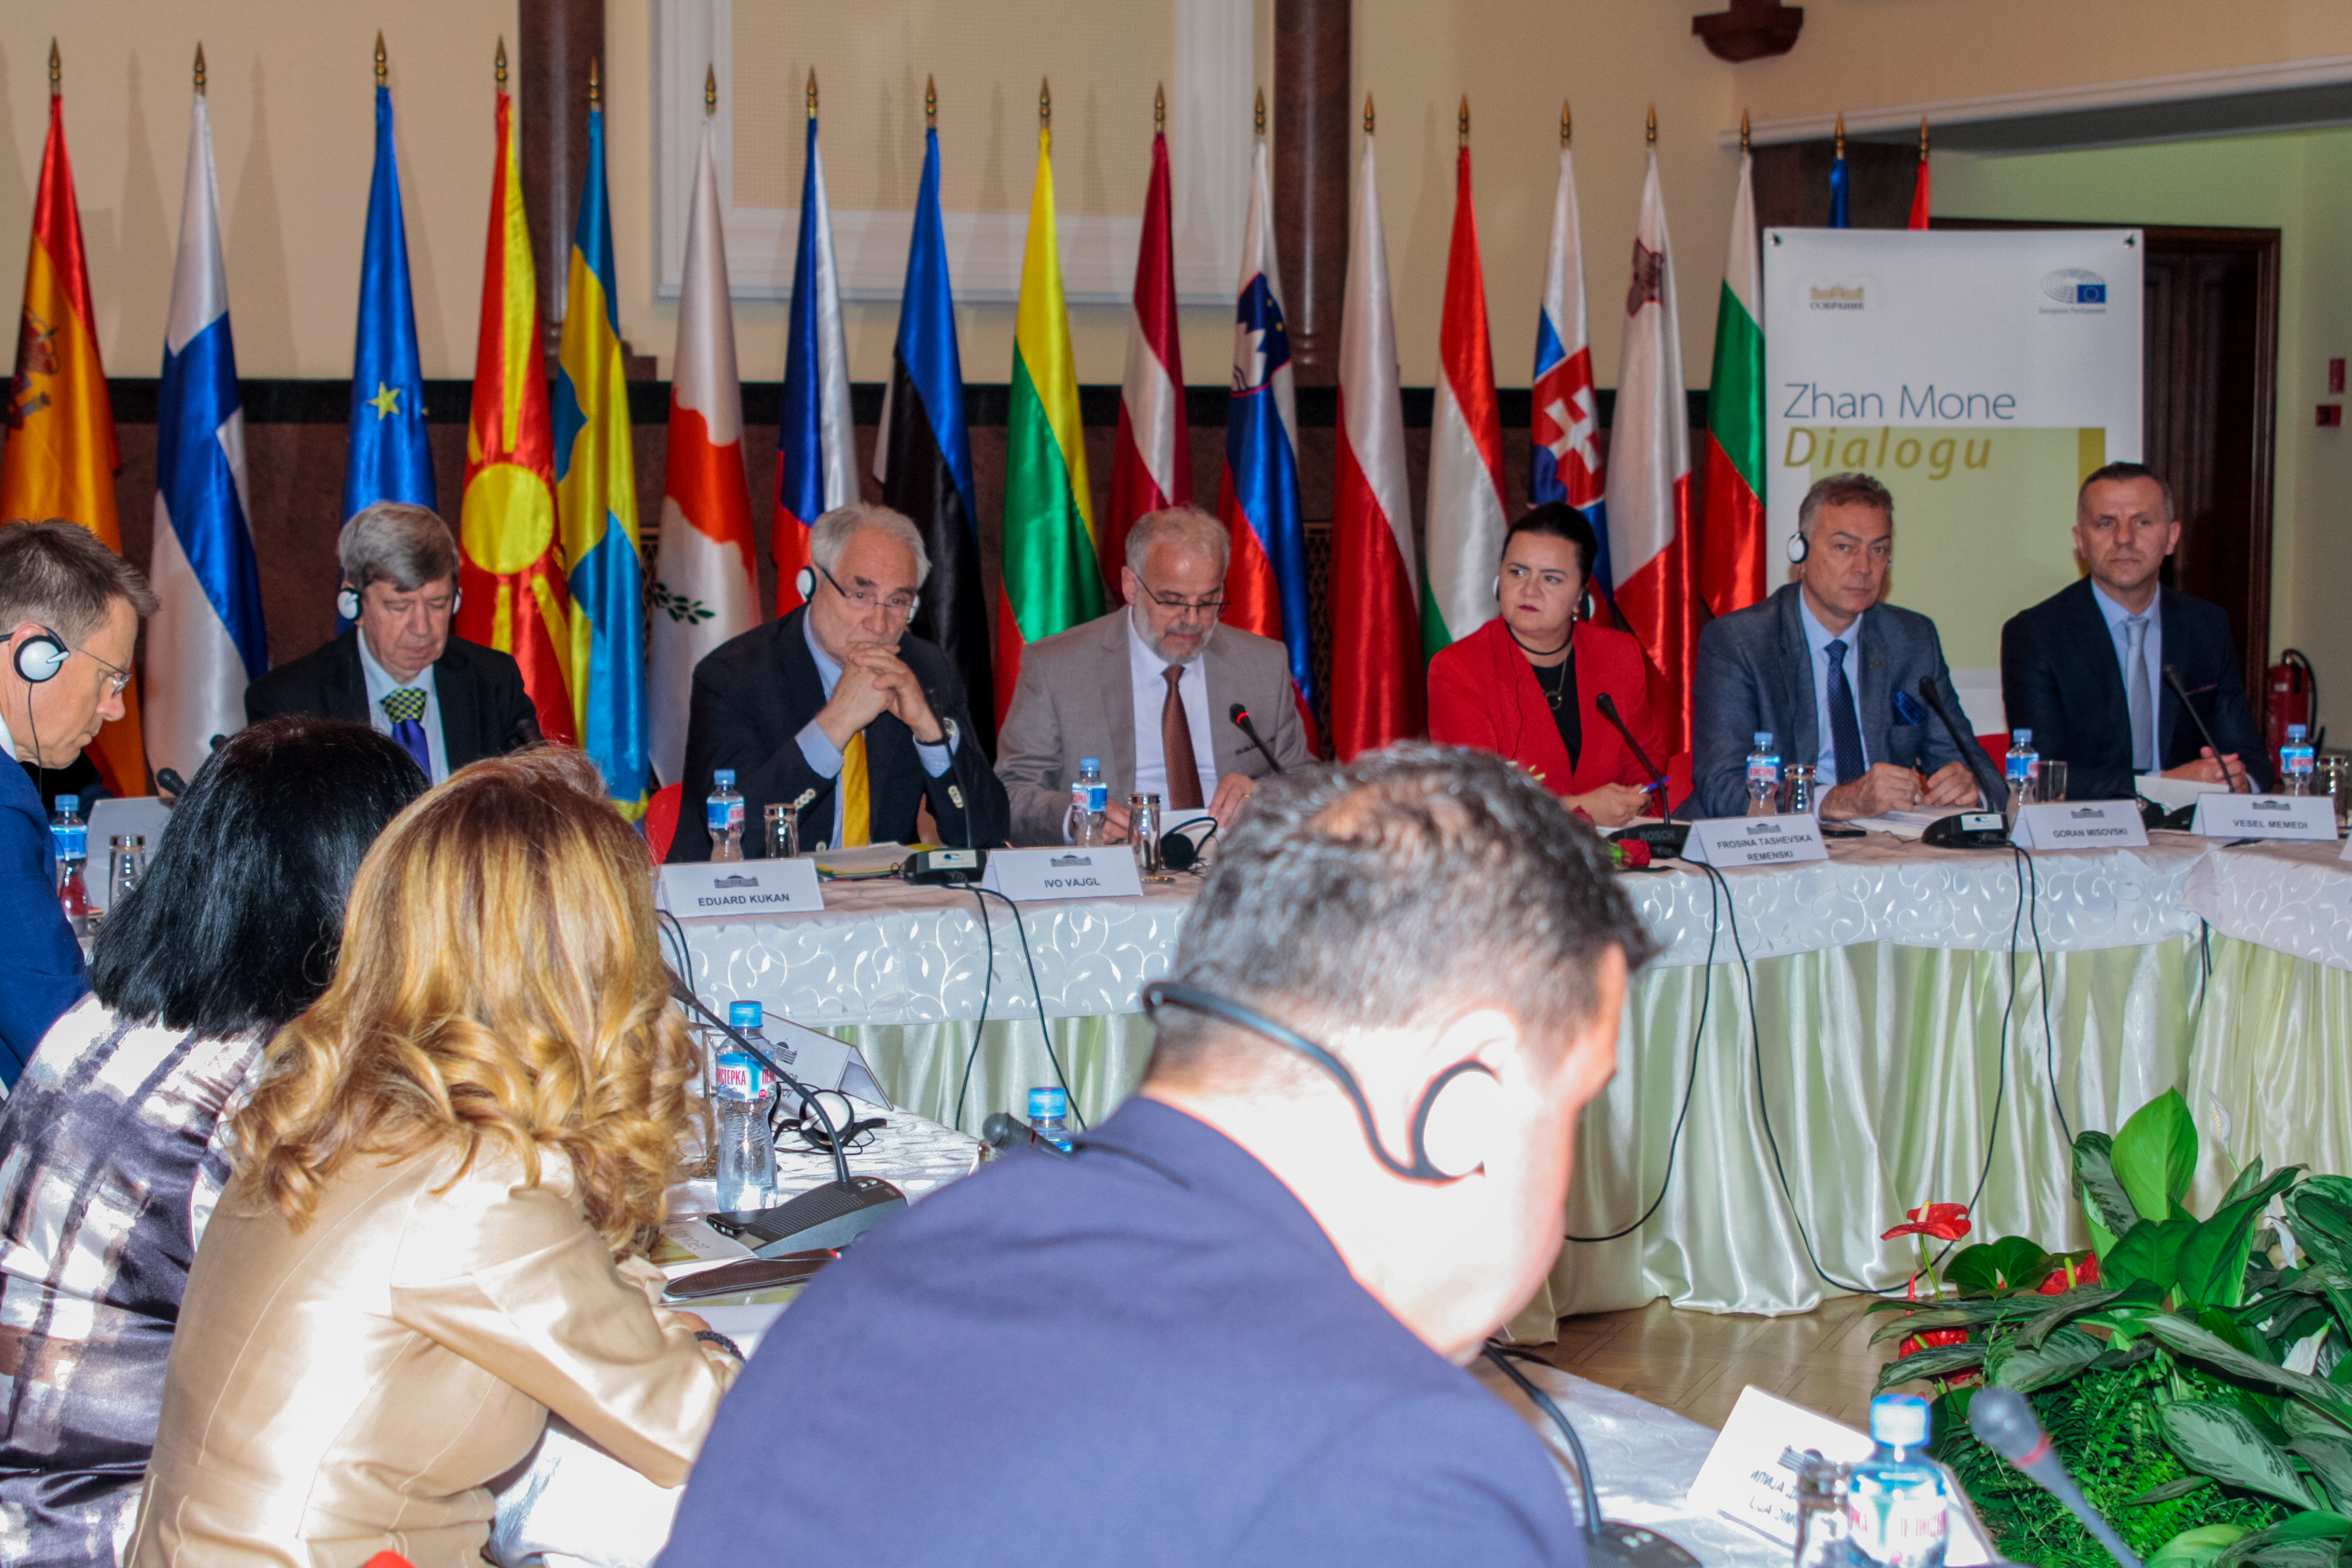 Photo of the political groups leadership during the Jean Monnet Dialogue